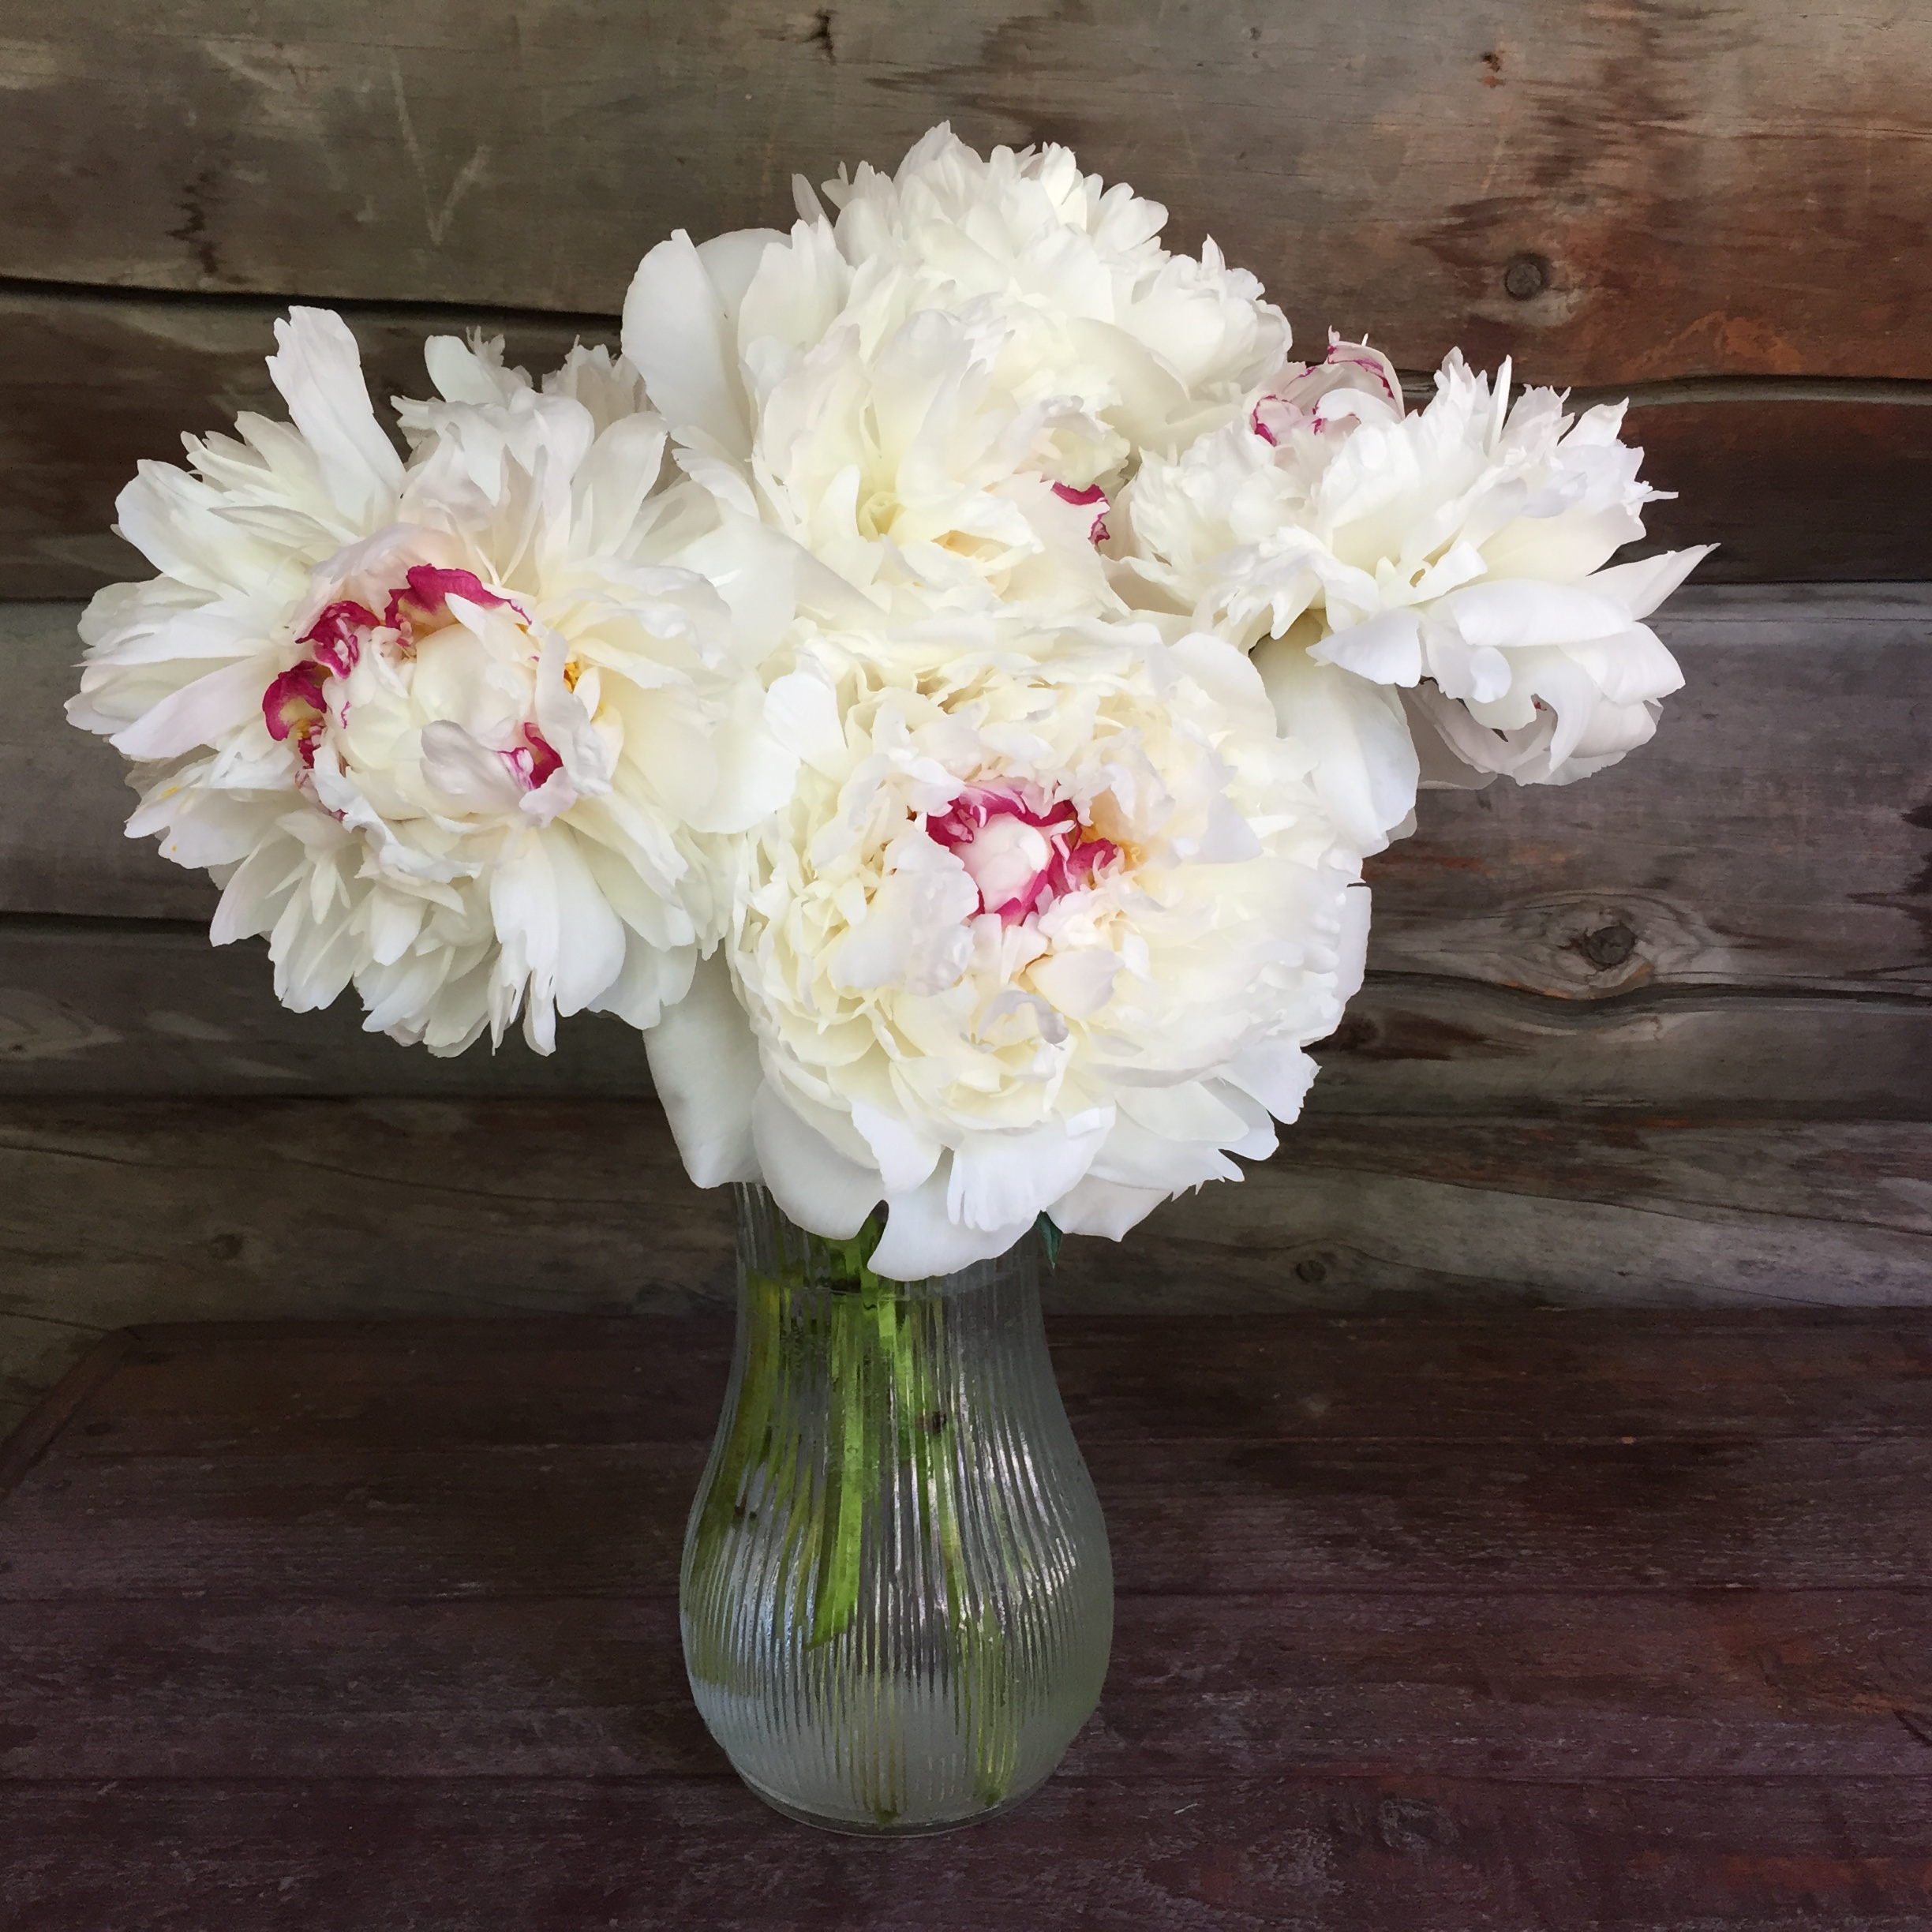 A Bouquet of Festiva Maxima Peonies